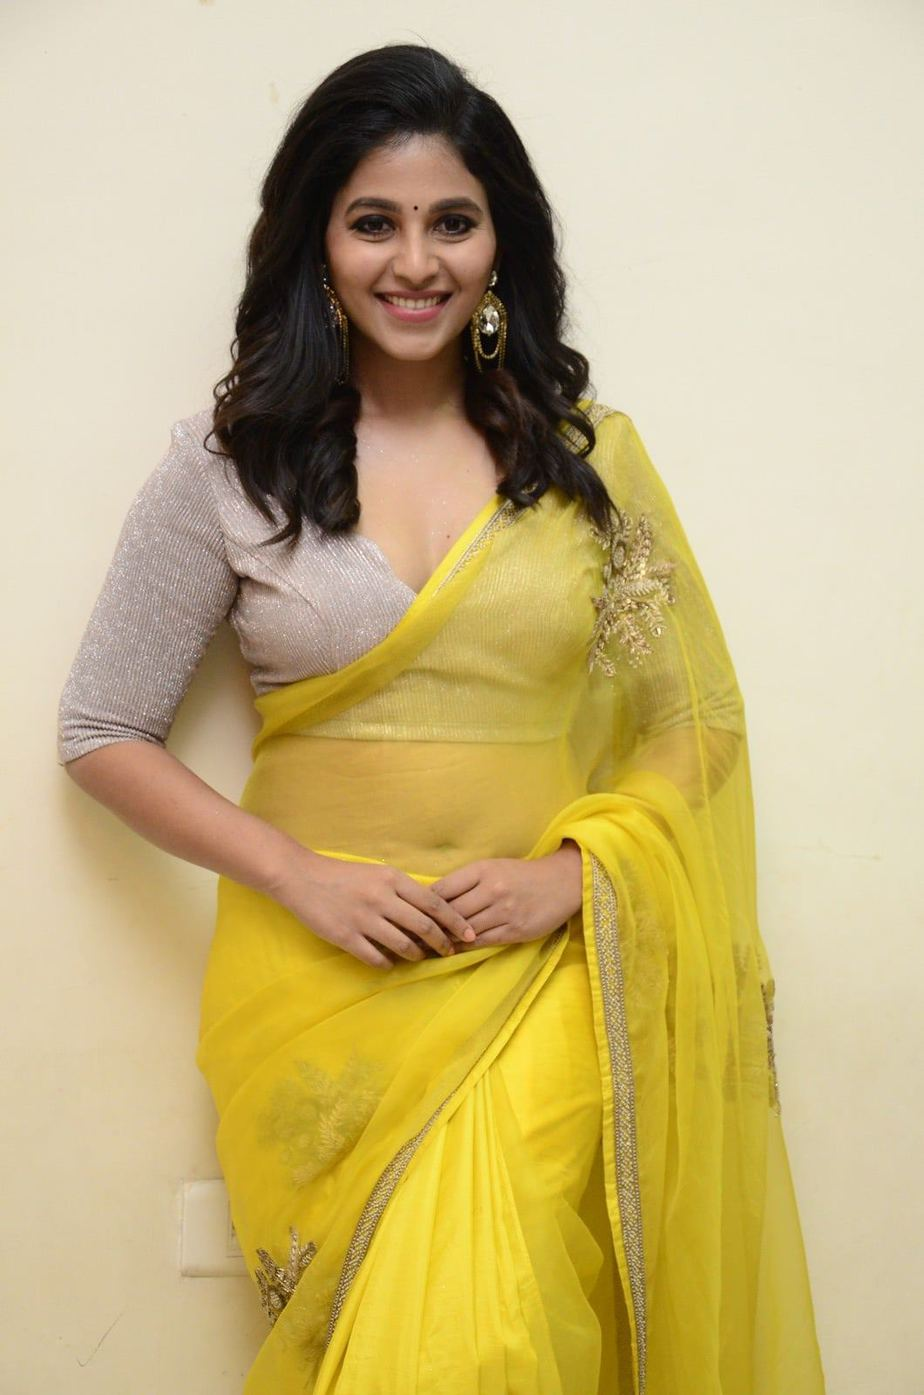 Anjali in a yellow saree for Vakeel saab pre release event-3